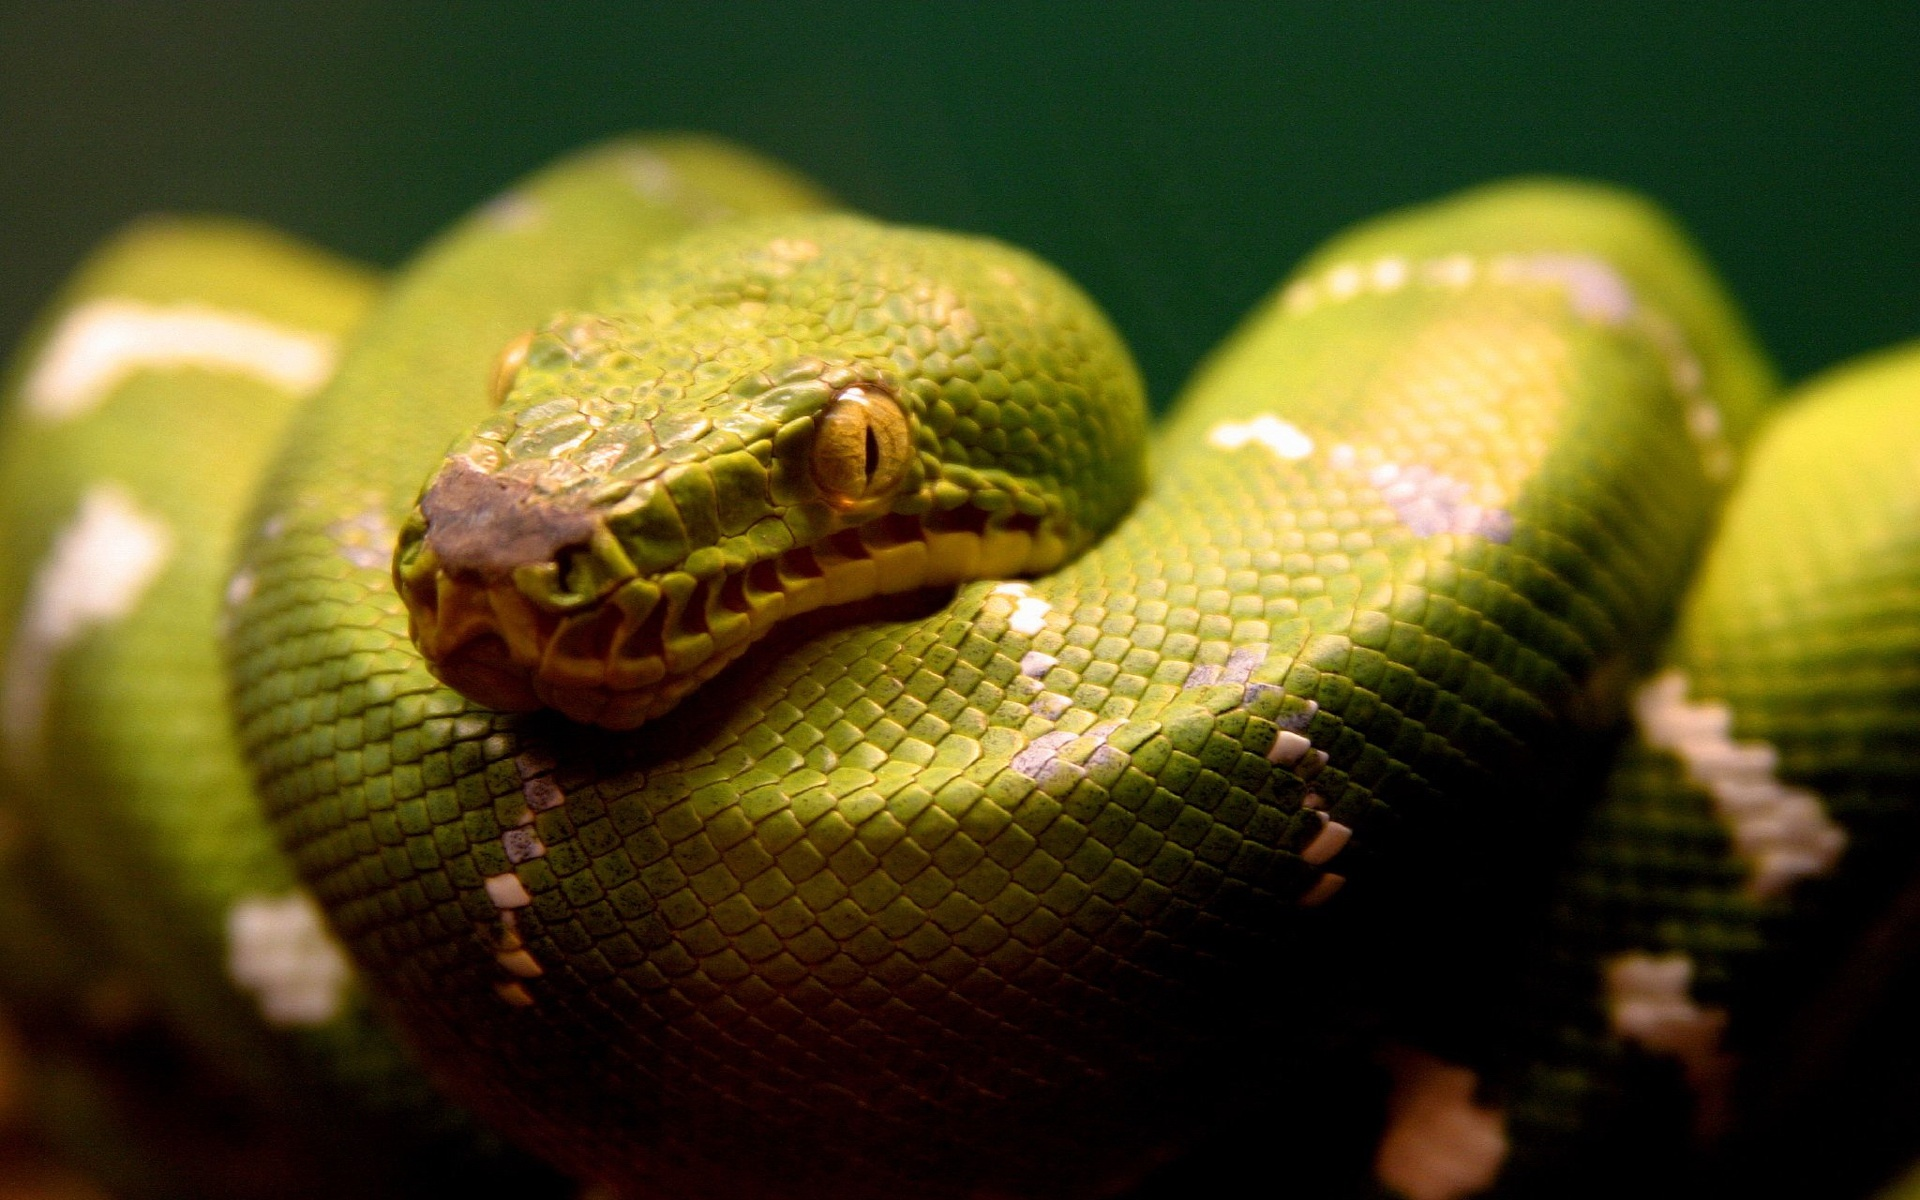 A Green Snake 1216.09 Kb